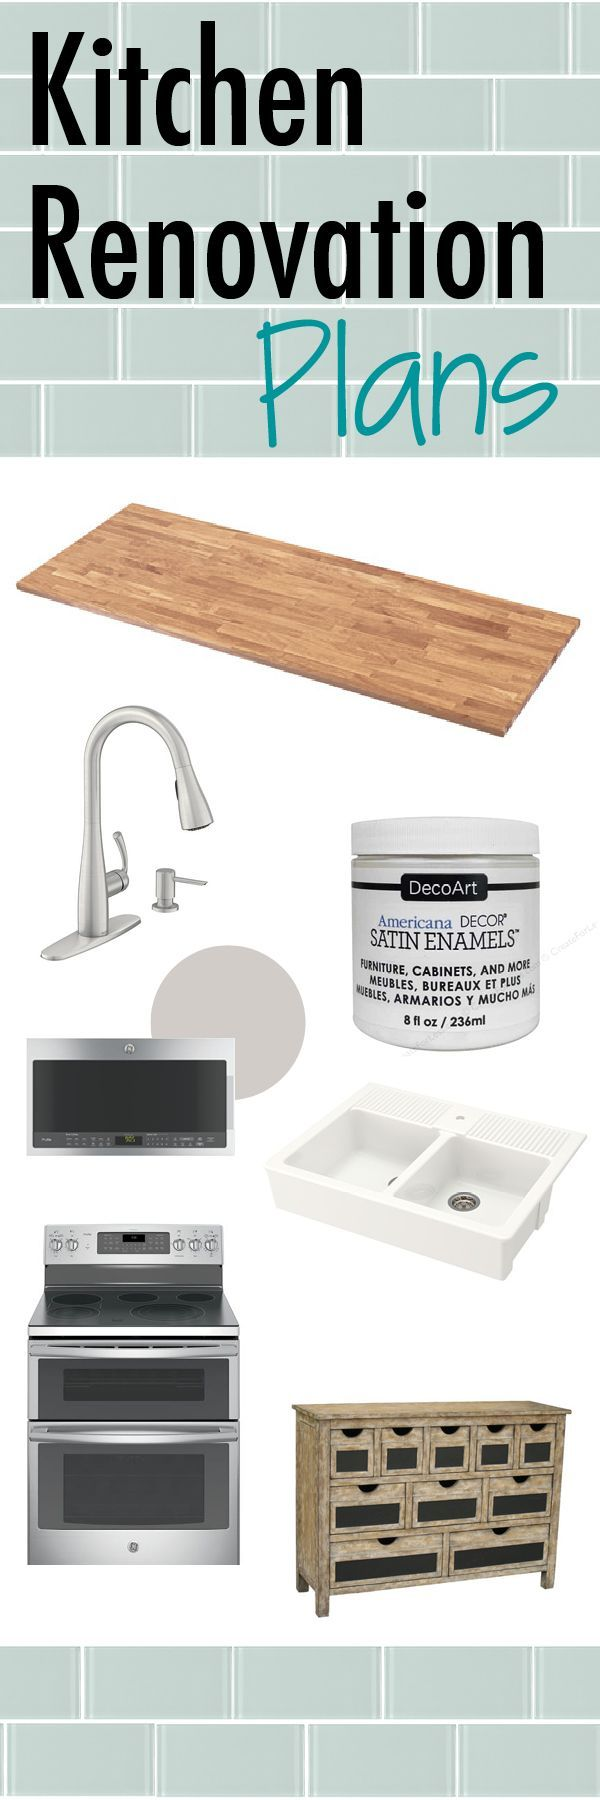 I am about to refresh my kitchen and I thought I would share my renovation plans as part of the one room challenge. I'm going to be painting cabinets, installing butcher block countertops, removing backsplash, tiling backsplash, installing a farmhouse sink and replacing appliances. Stop by to see what I have in mind for a design.